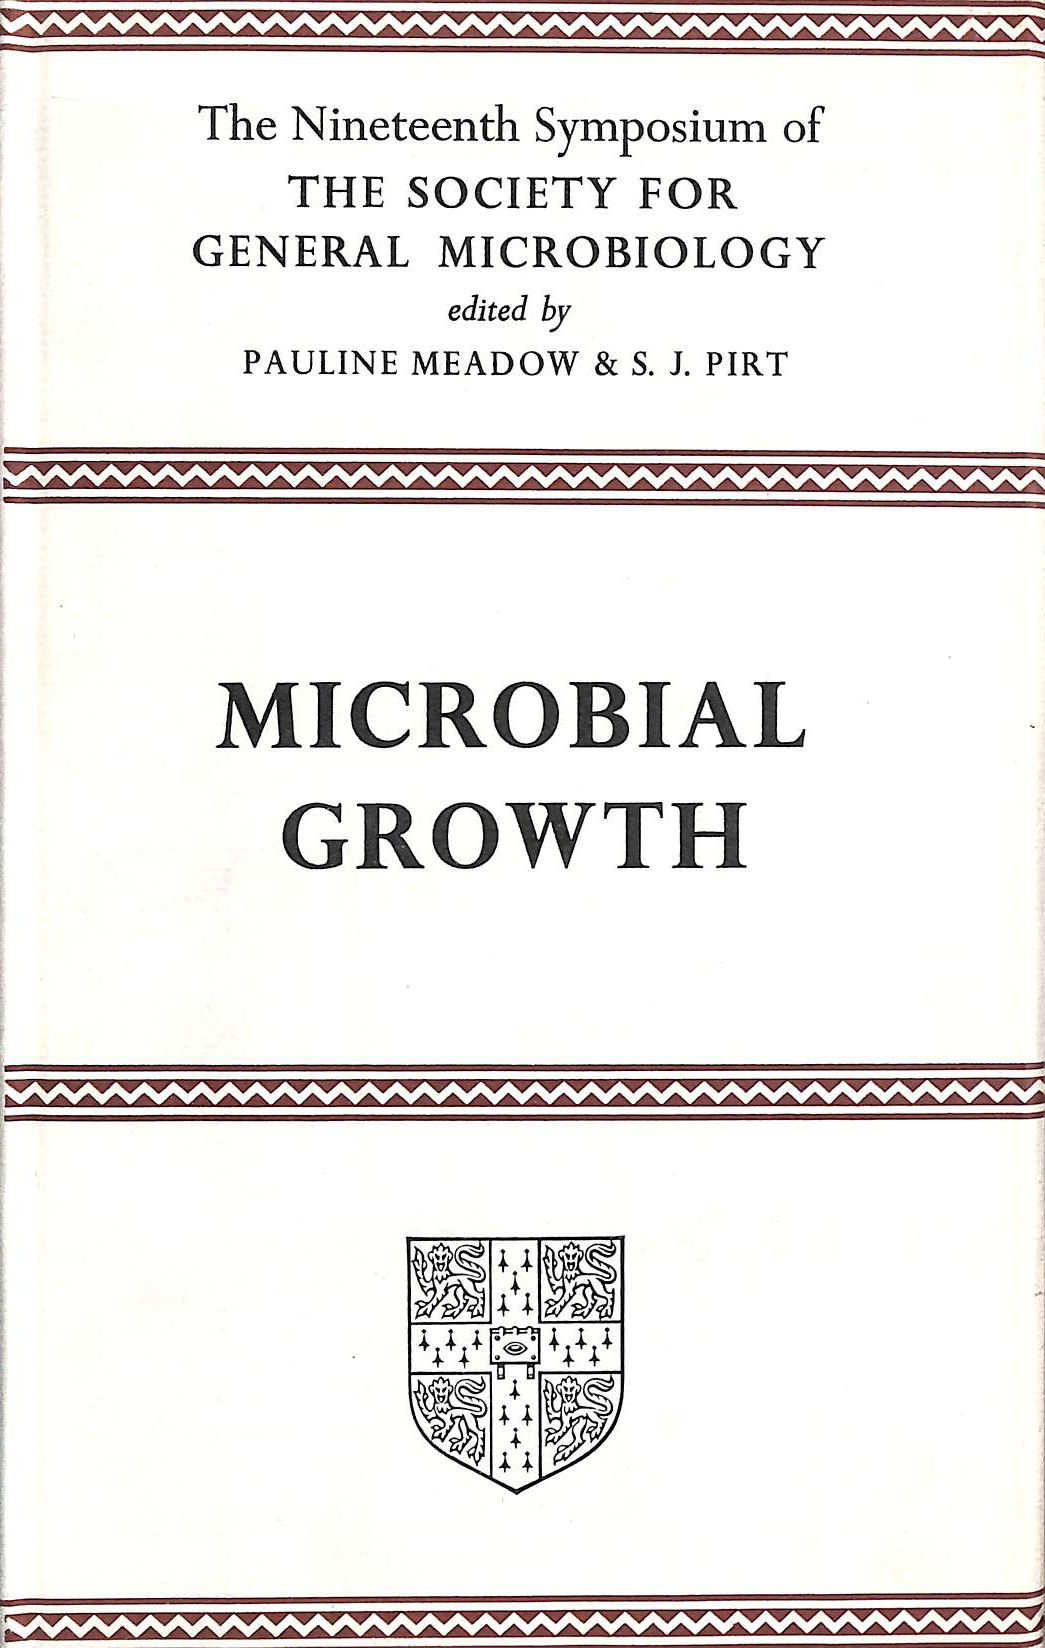 Image for Microbial Growth: Nineteenth Symposium of the Society for General Microbiology